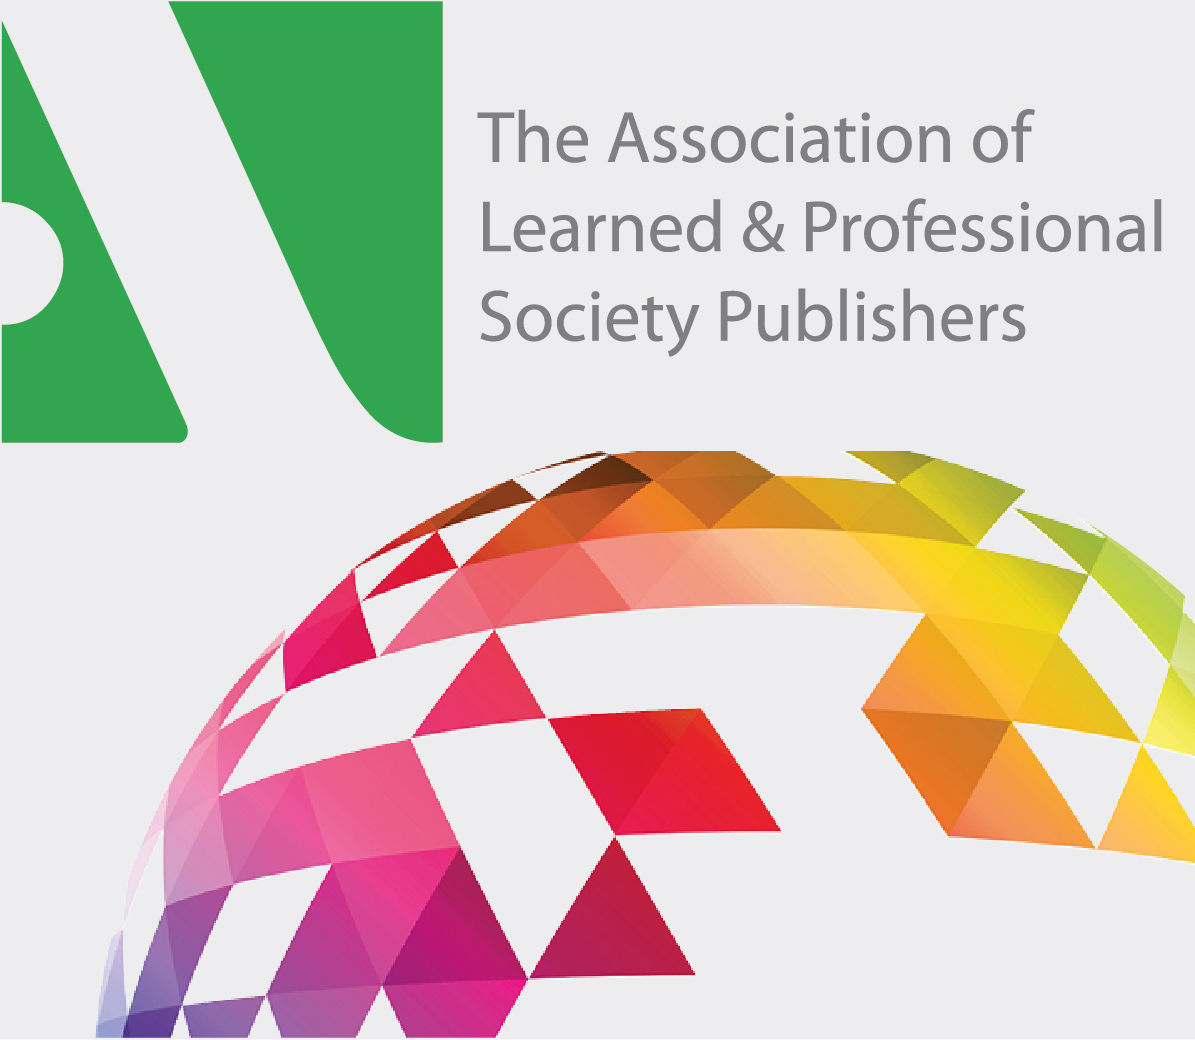 ALPSP Annual Conference and Awards 2019